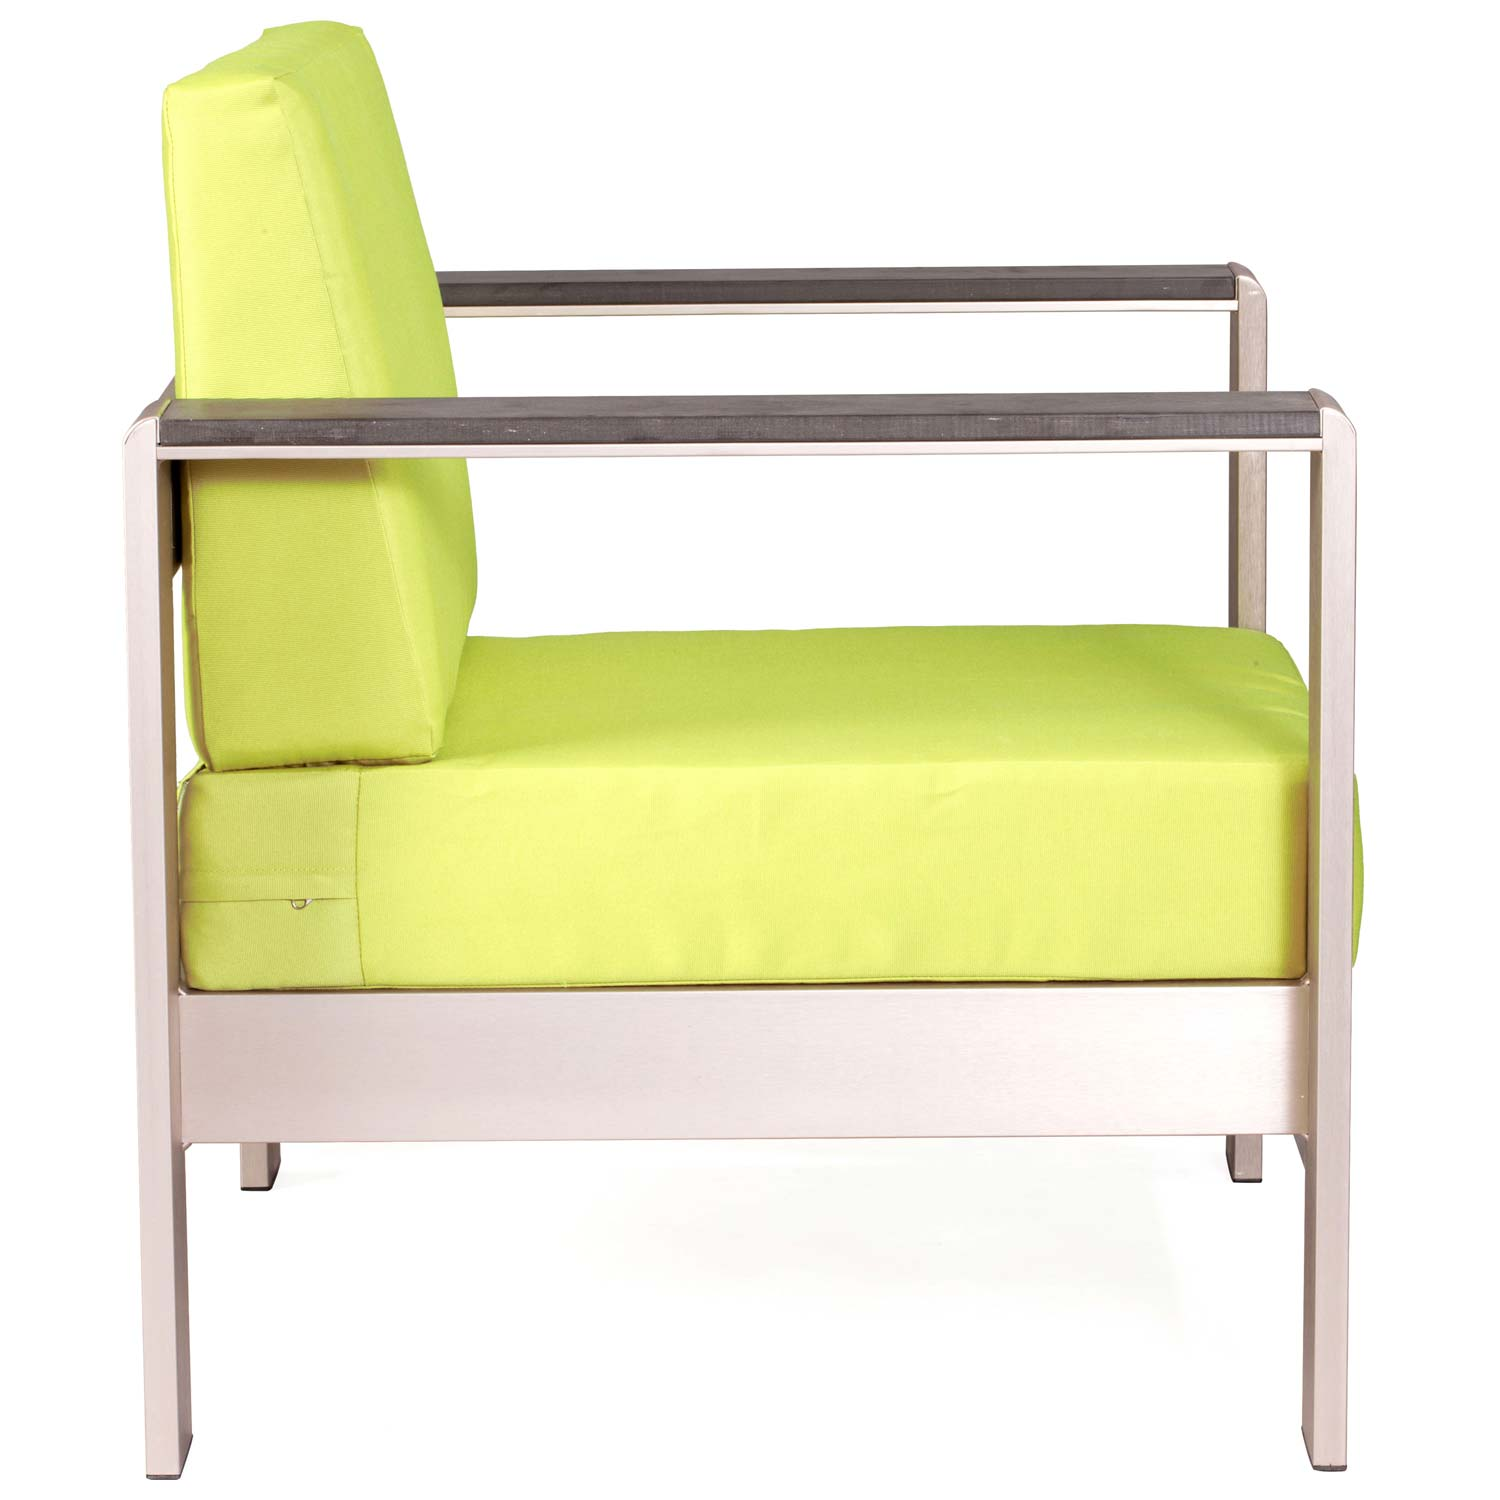 Cosmopolitan Patio Armchair - Brushed Aluminum, Teak, Green - ZM-701840-703651